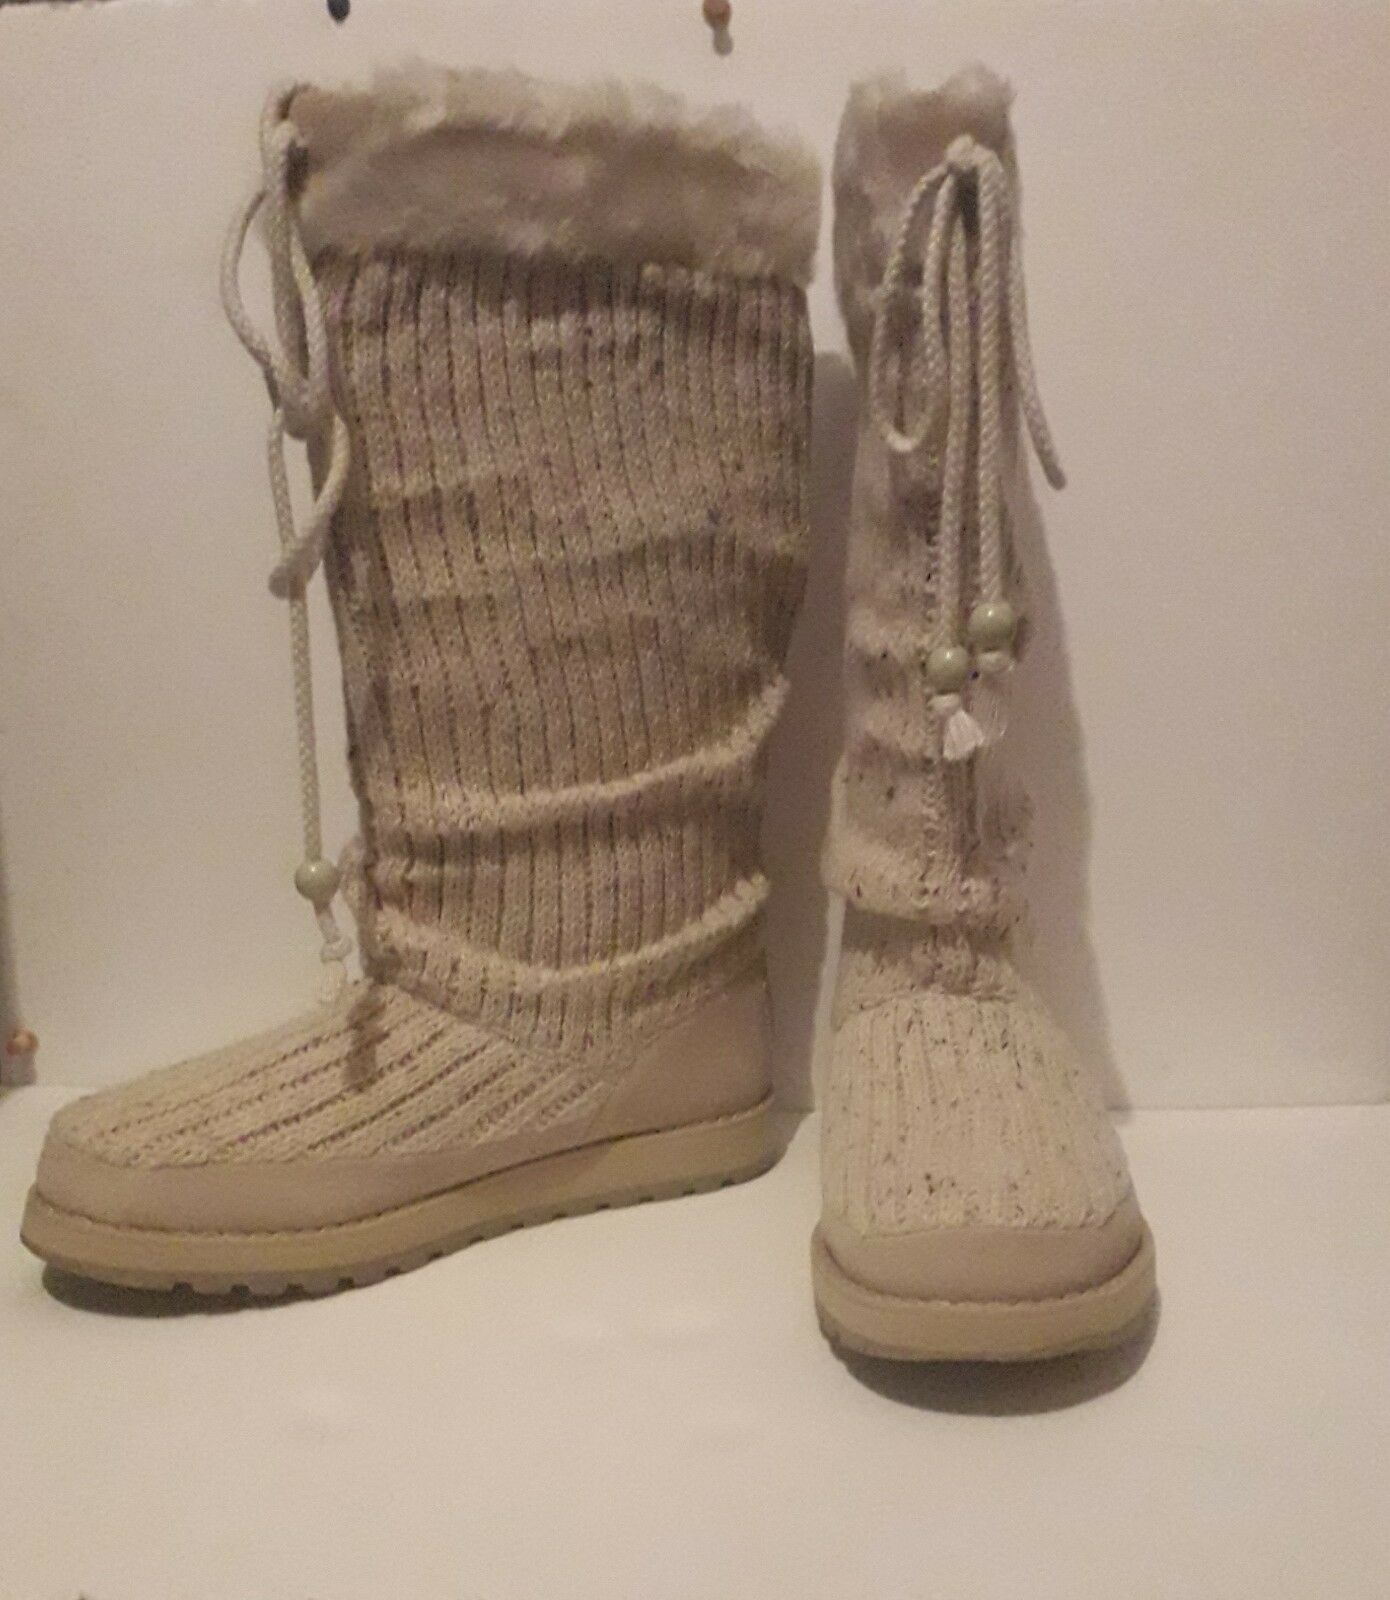 SKECHERS Cream White Brown Faux Fur Size UK 6 Laced Fabric Natural Snow Boots